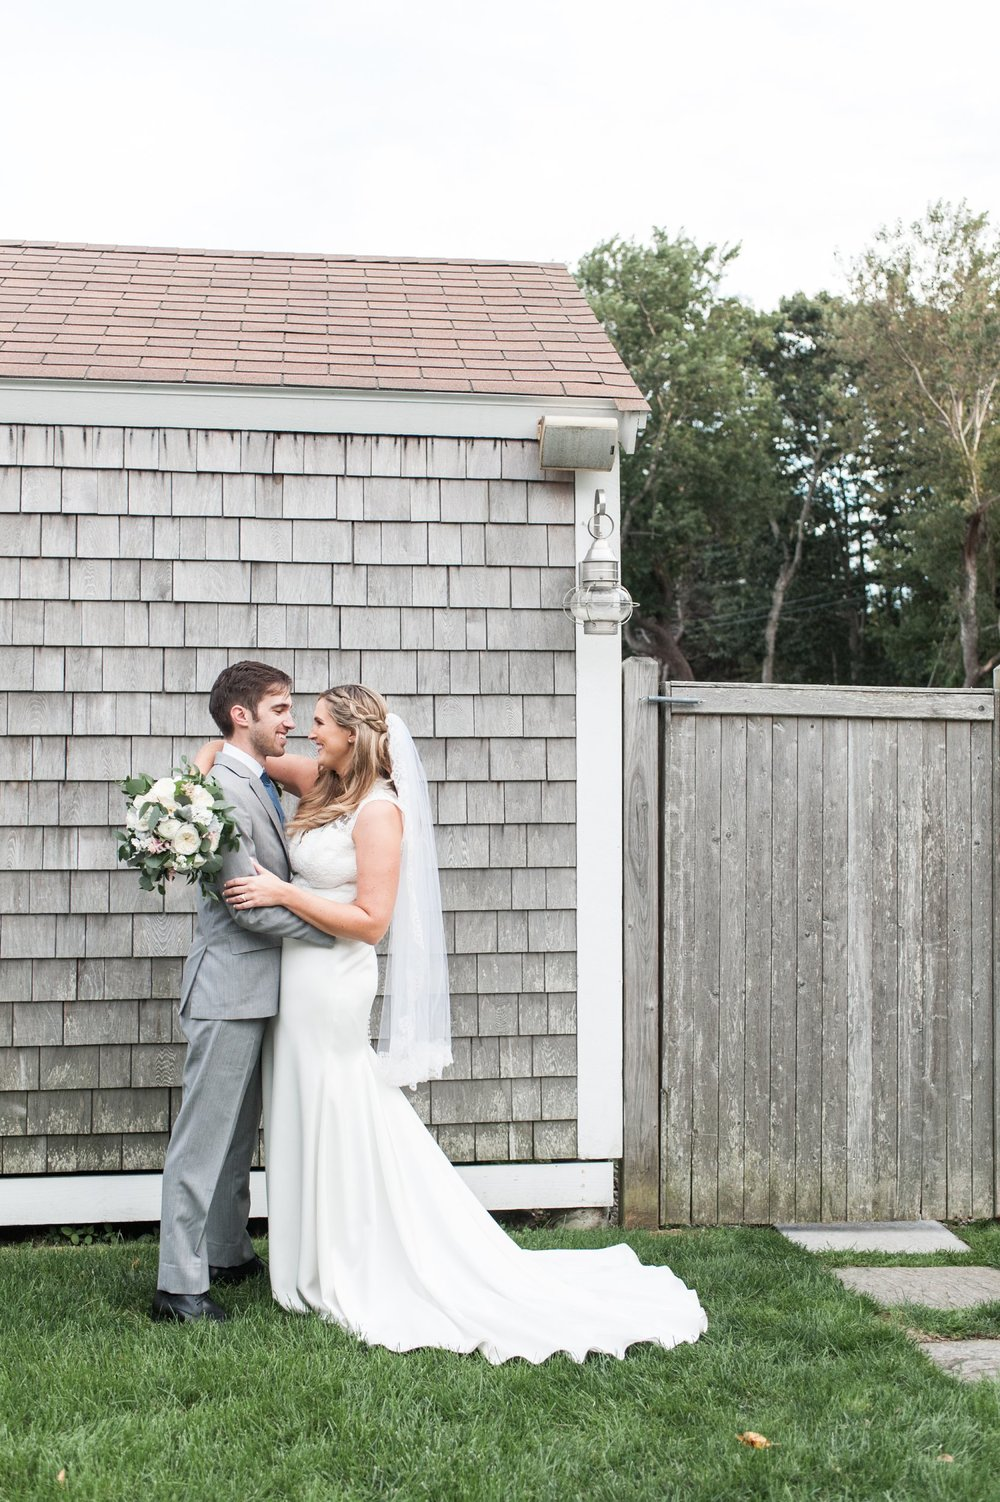 Dennis Inn Cape Cod Wedding portraits of the newlyweds by Lynne Reznick Photography